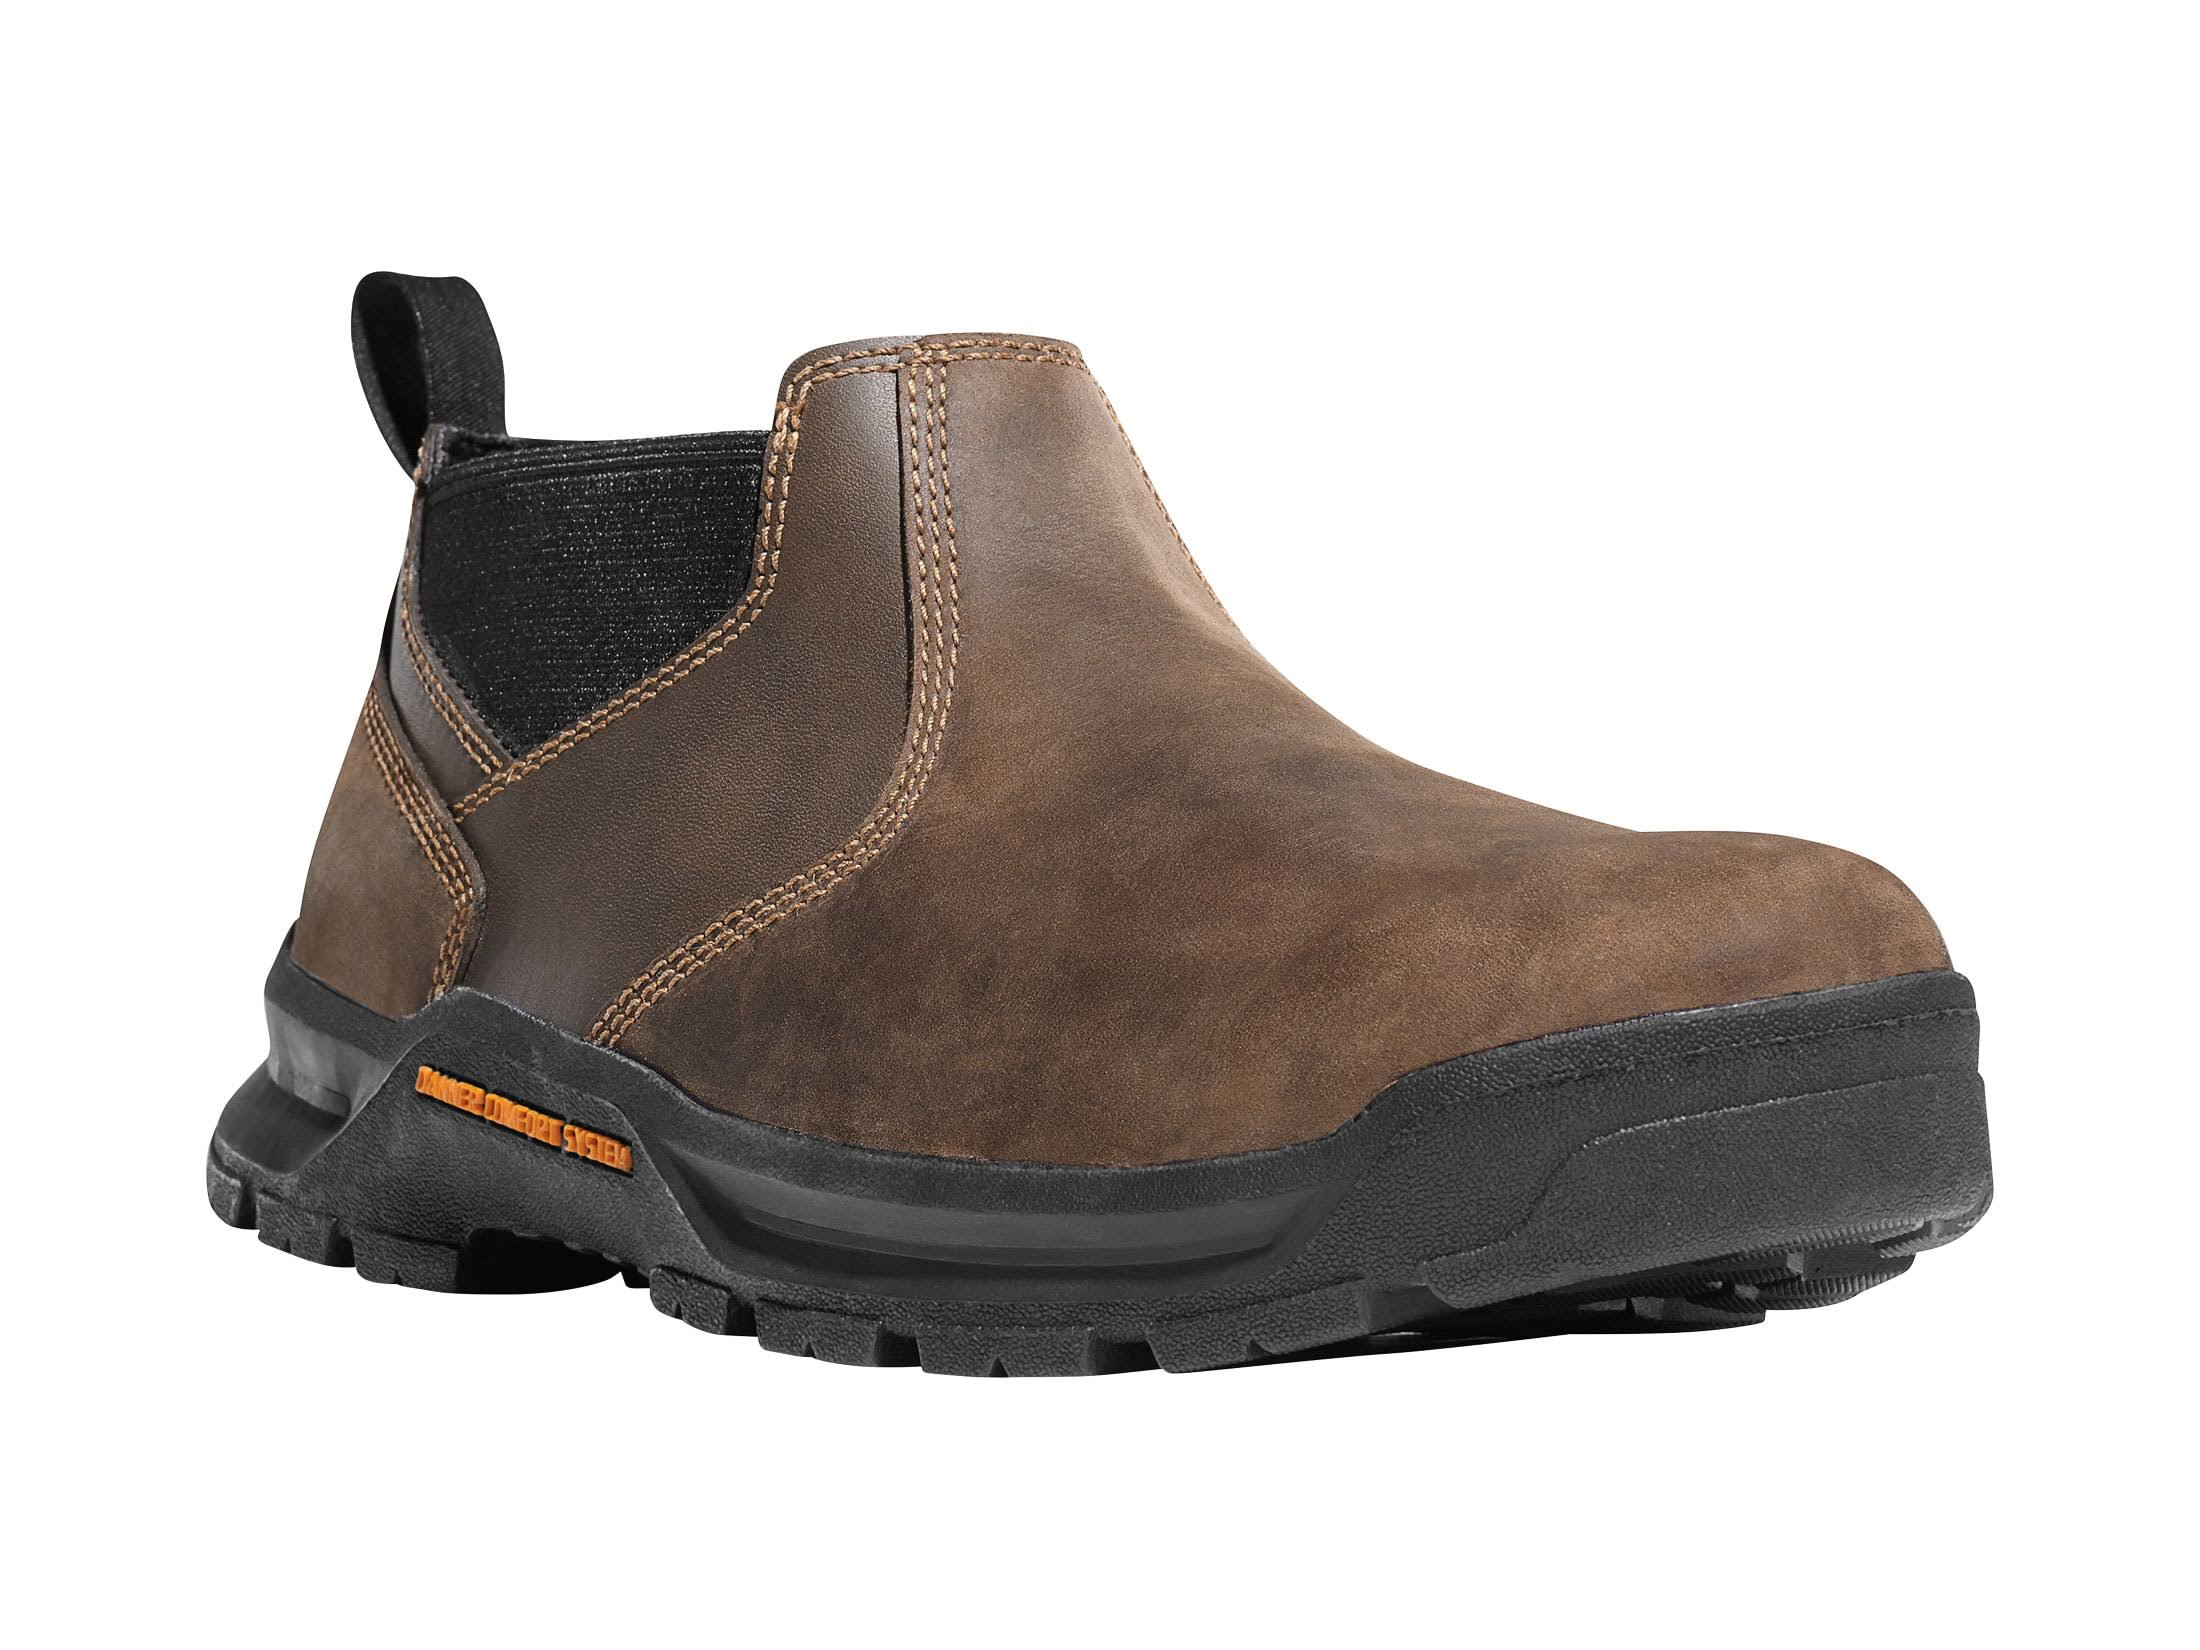 Danner Men's Crafter Romeo Work Boot - Brown, 10 US, 3""